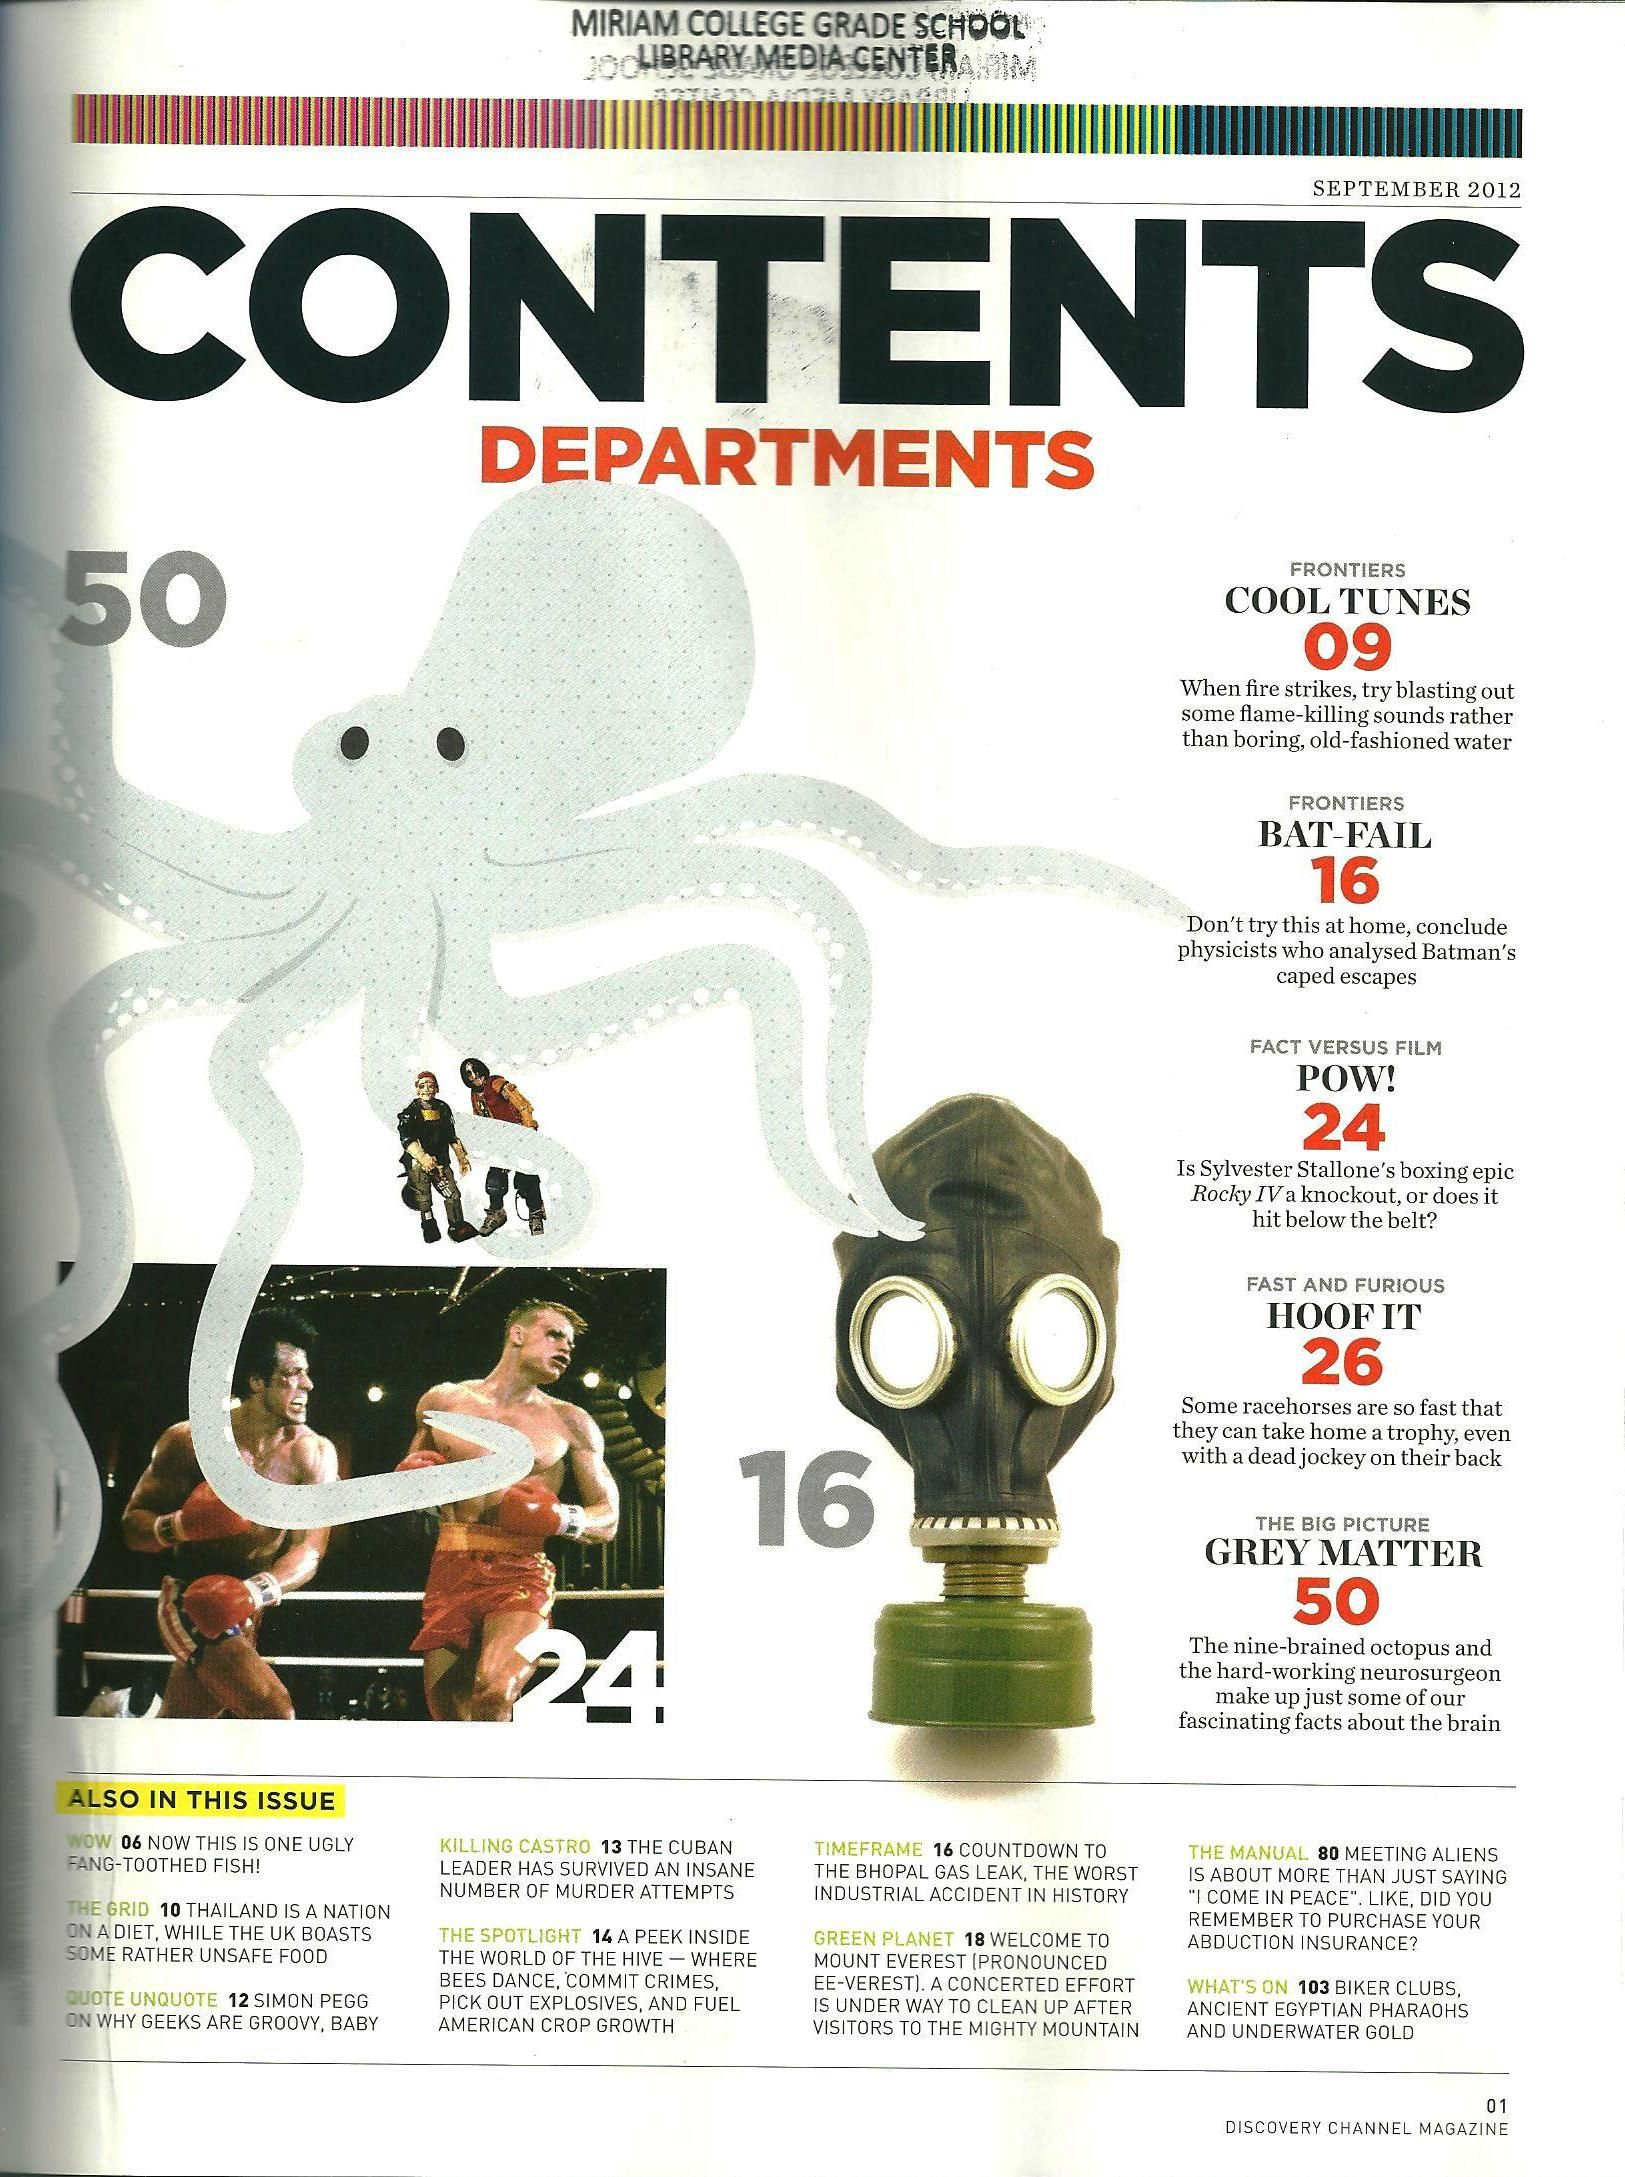 17 Best images about Coffee Magazine Contents Pages on Pinterest ...